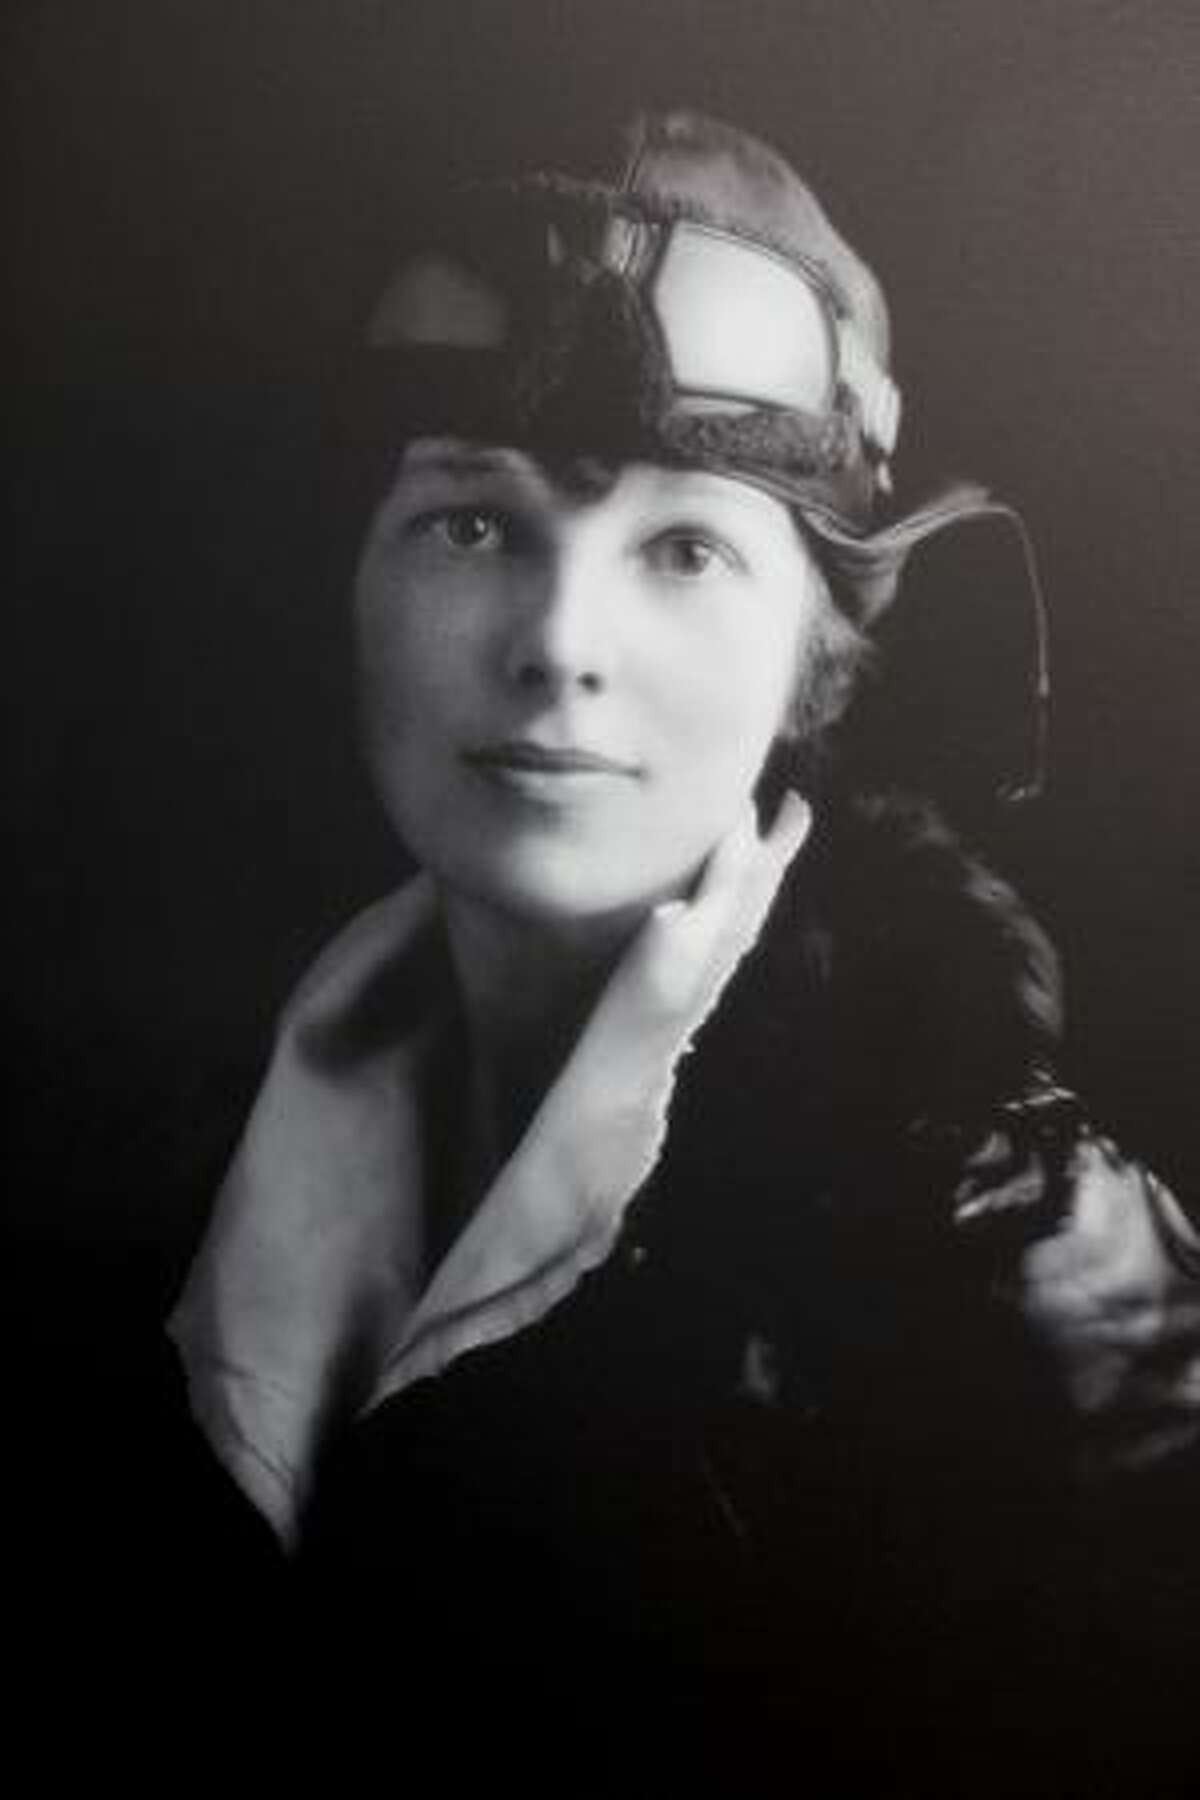 Amelia Earhart's photo taken for her pilot's license at the new Amelia Earhart exhibit at The Museum of Flight. The exhibit opens on Saturday October 24, 2009.